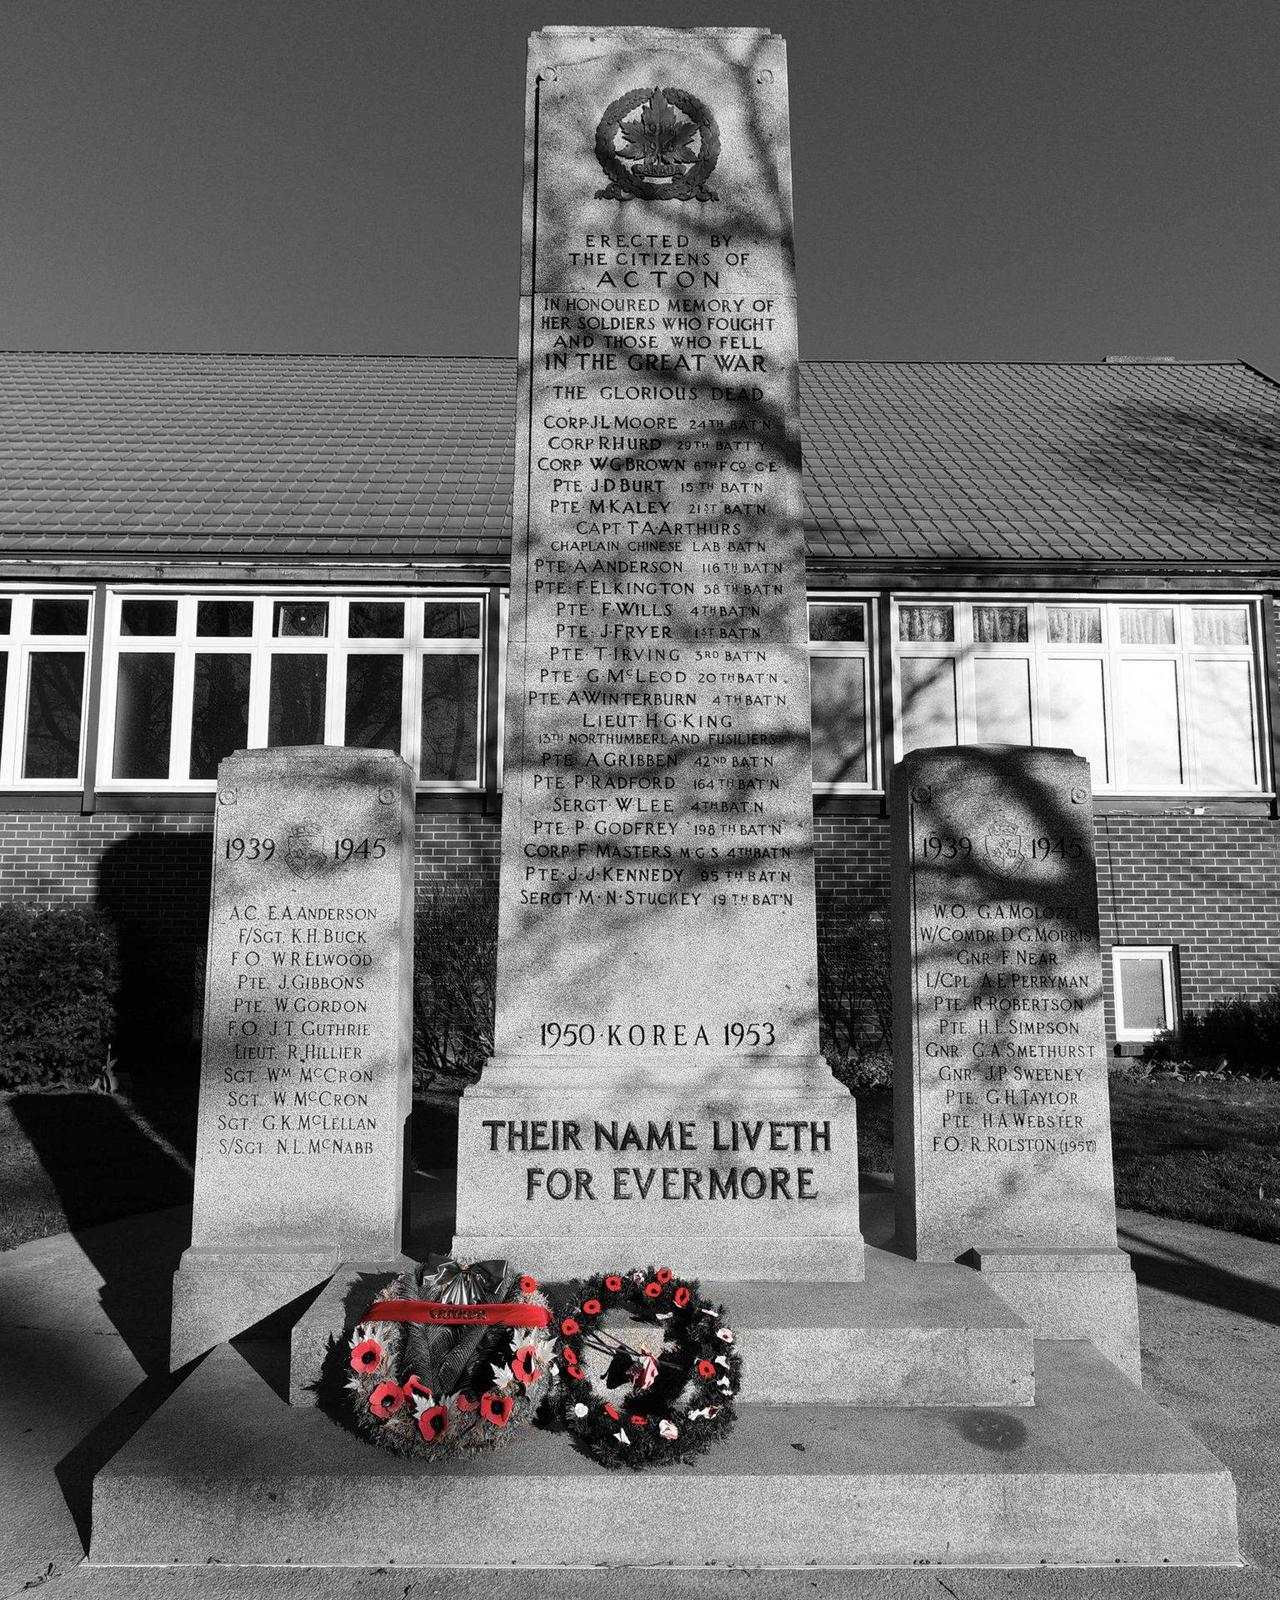 75th Anniversary of VE Day at the Acton Cenotaph